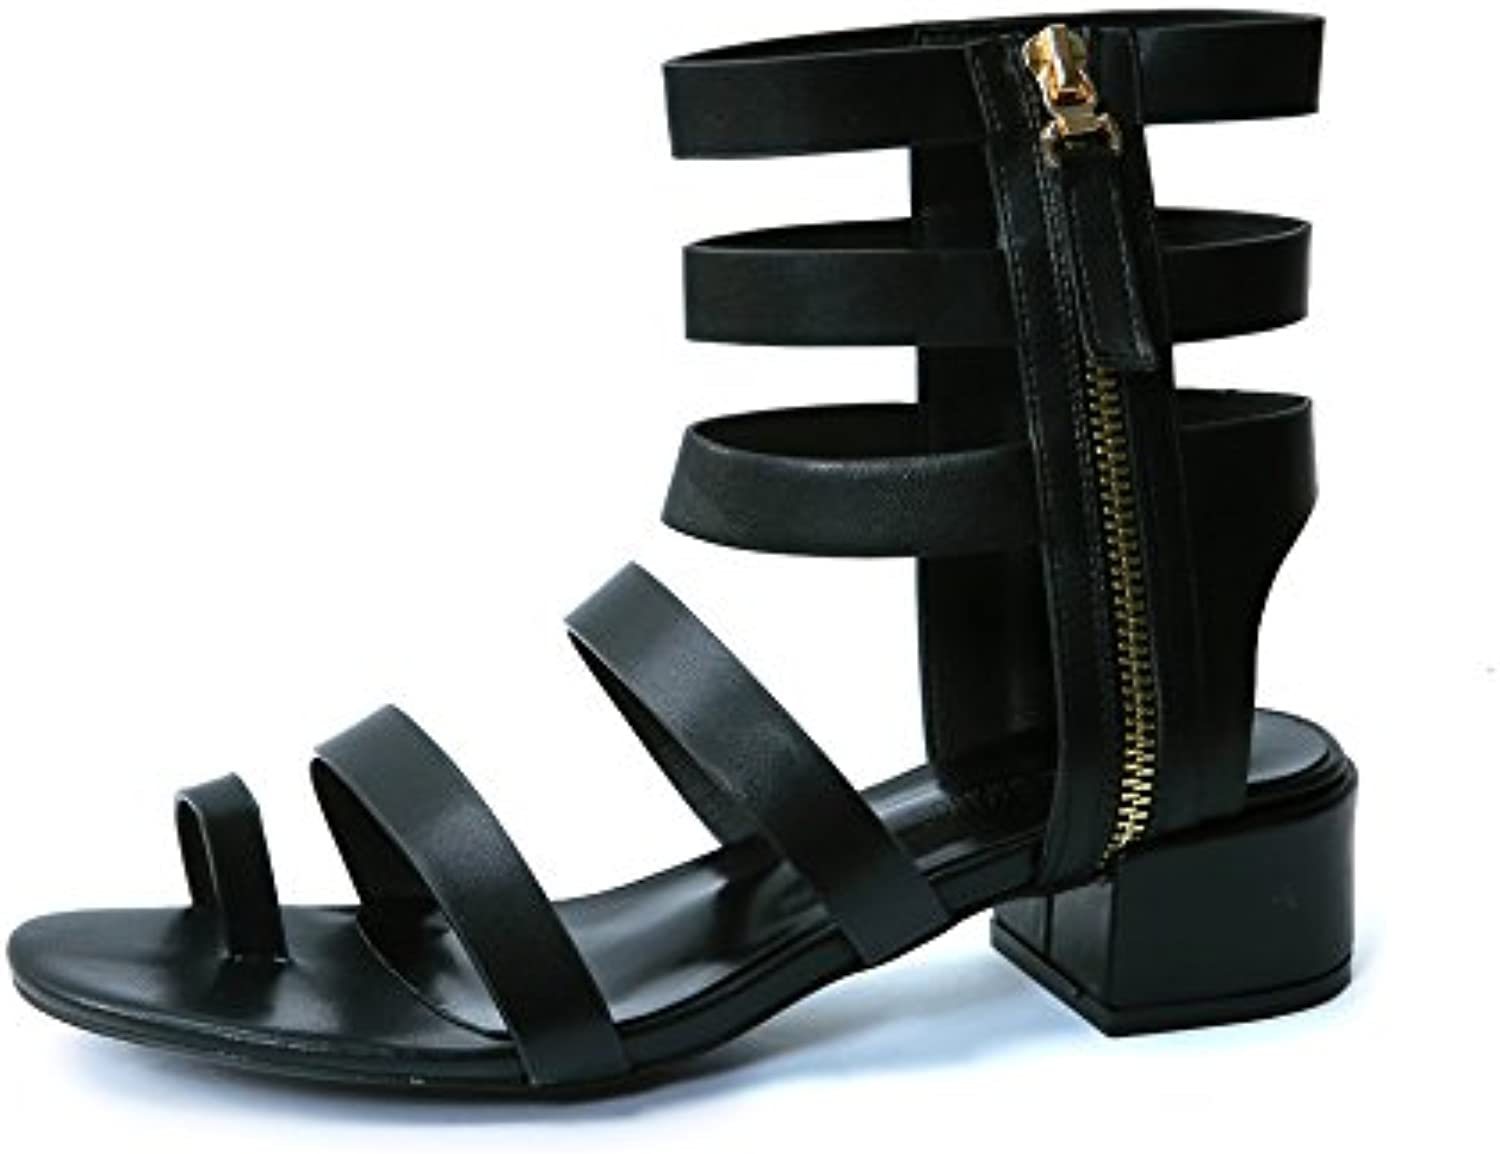 LGK&FA Female Fashion Toes with Sandals and High Heels Thirty-Four Black